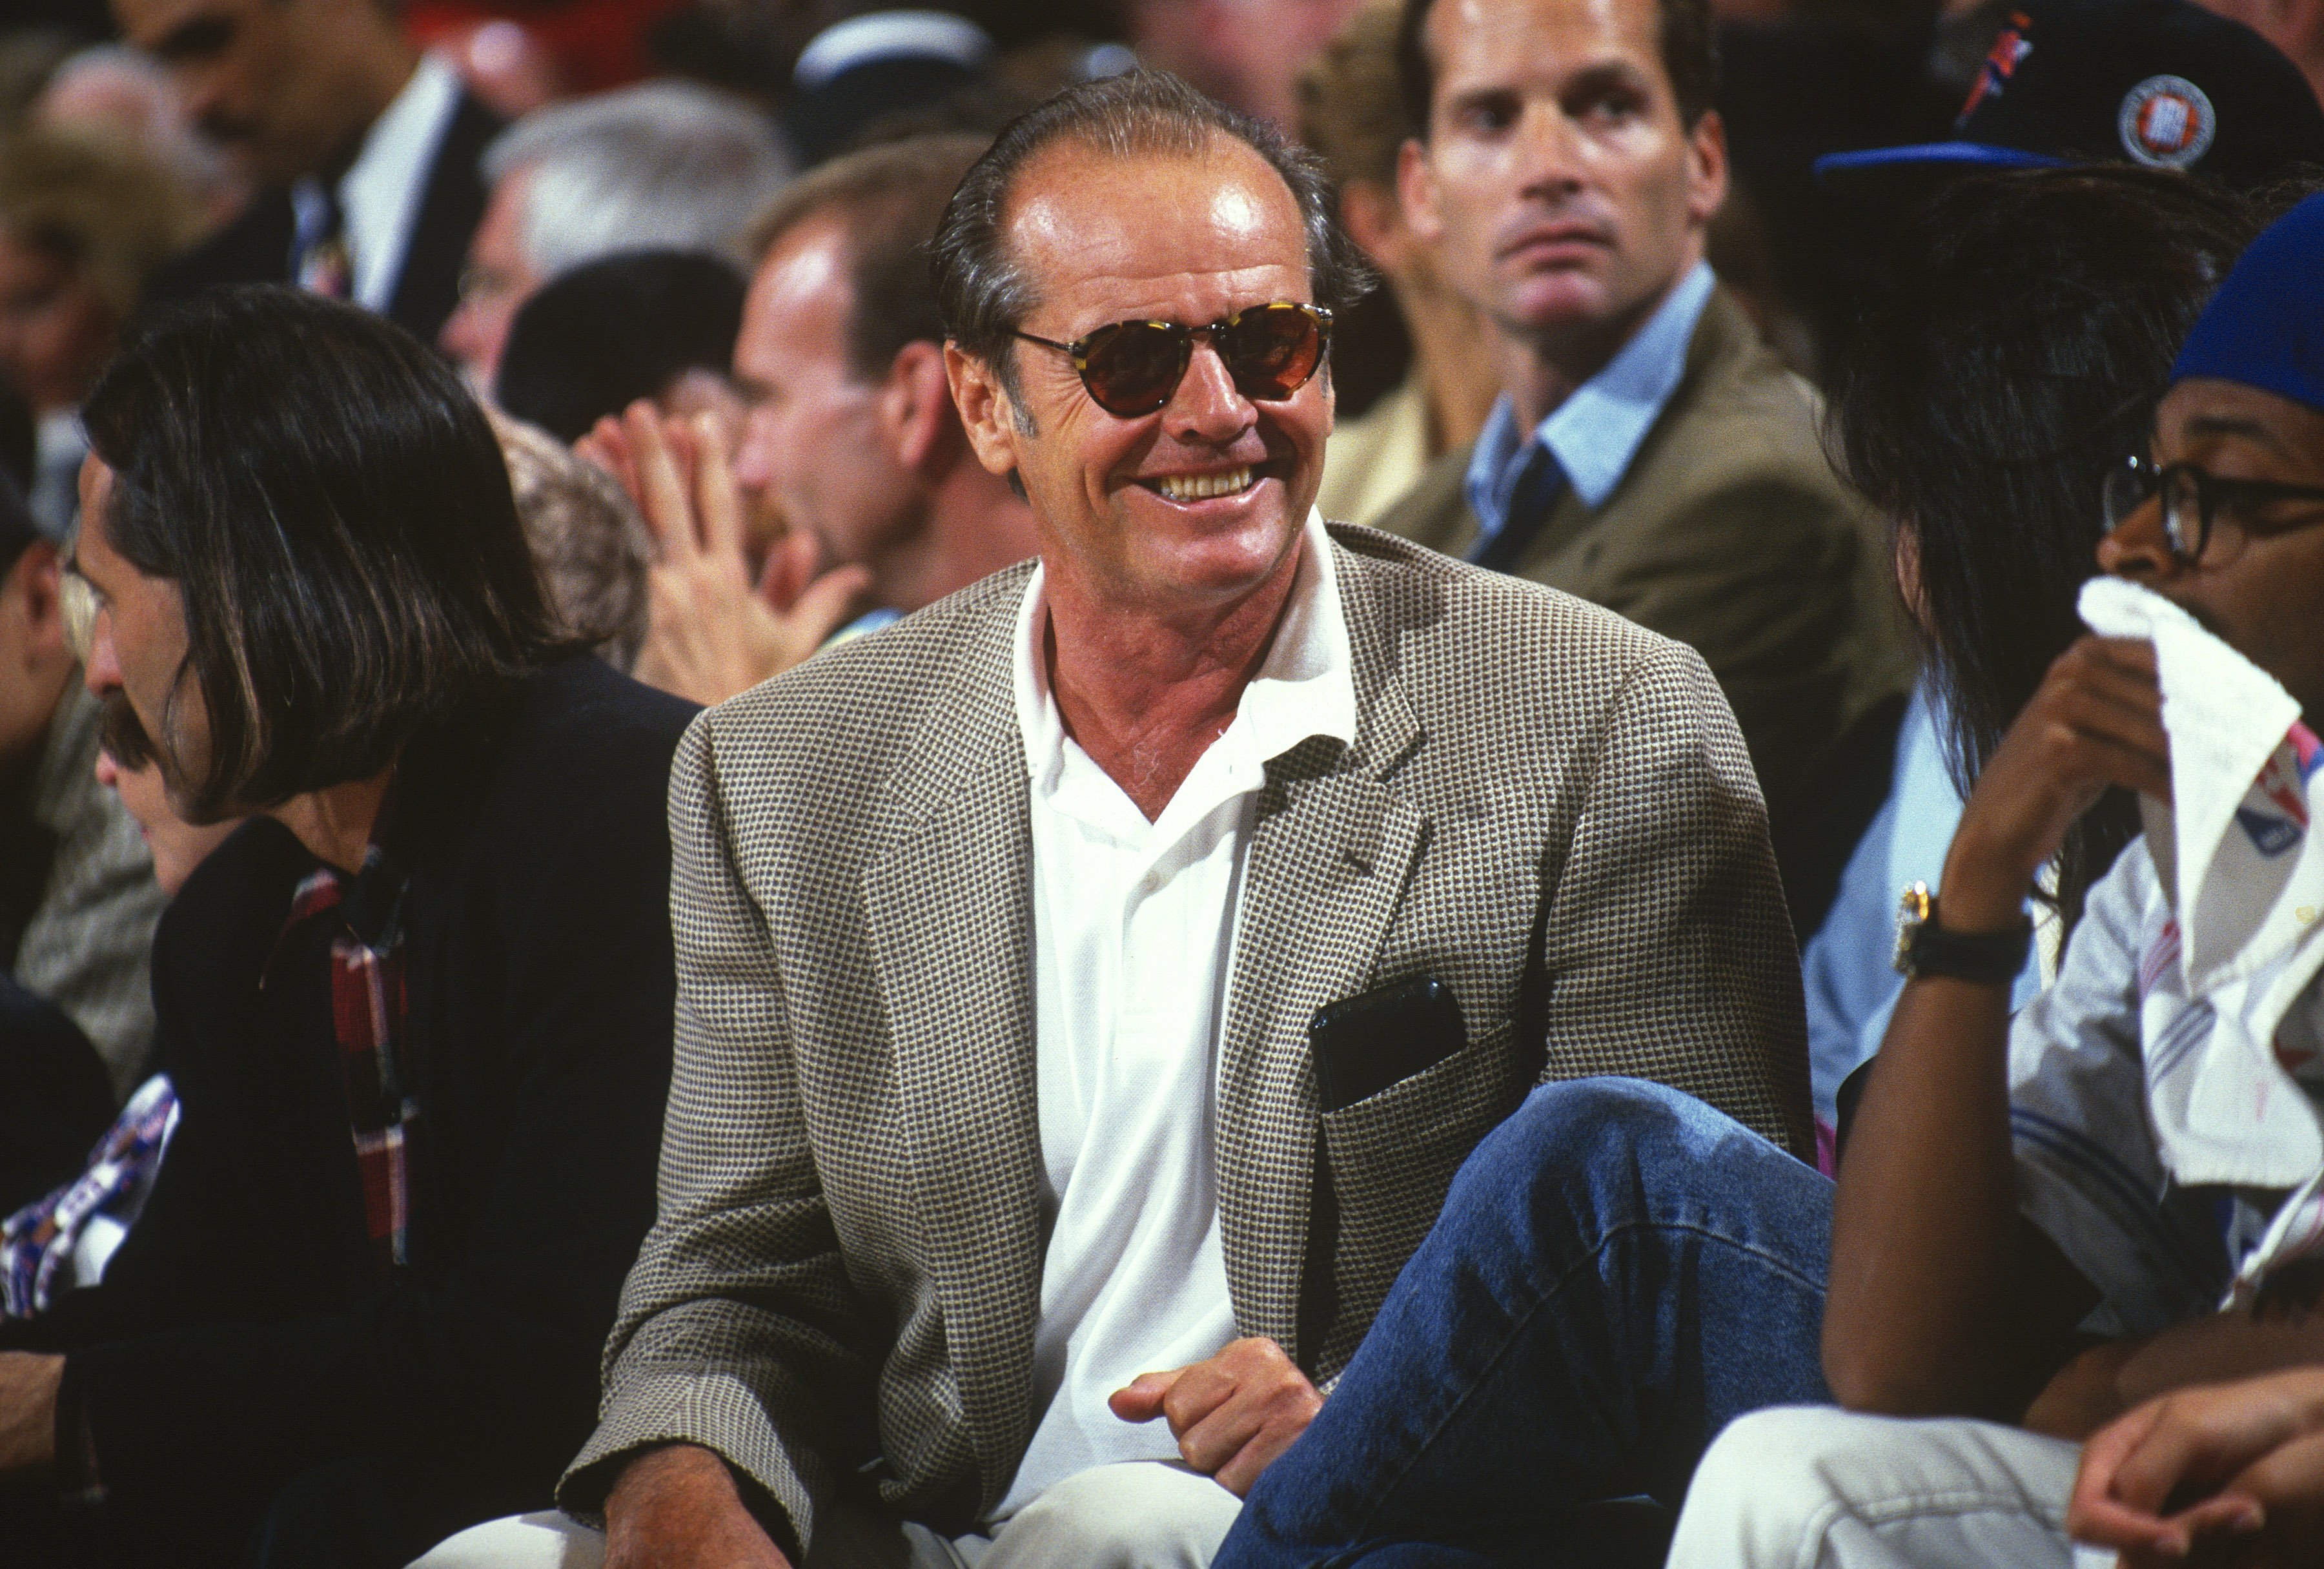 Jack Nicholson looks on during the 1994 NBA Finals between the Houston Rockets and the New York Knicks at Madison Square Garden in the Manhattan Borough of New York City circa 1994. | Source: Getty Images.